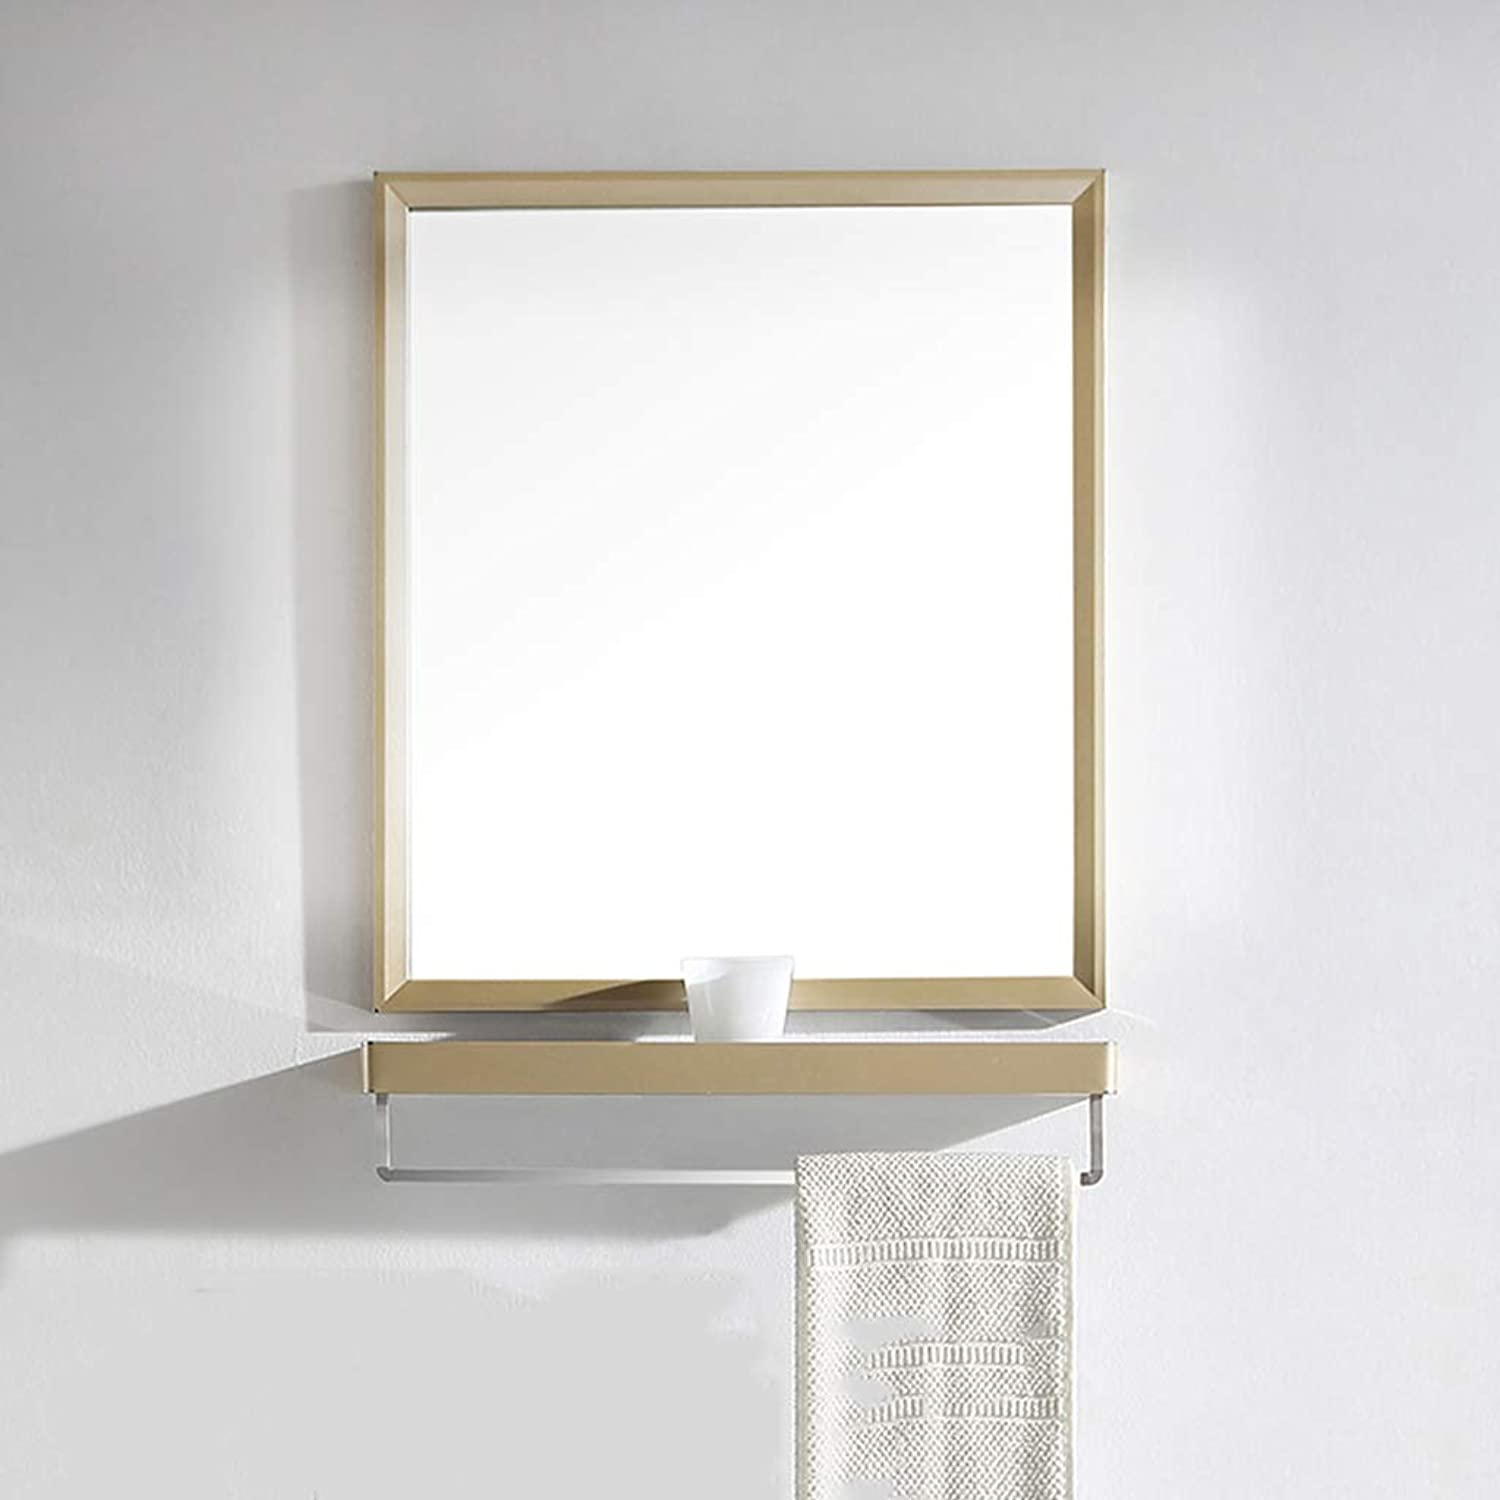 Bathroom mirror with Shelf Stainless Steel Champagne wash Makeup Mirror bathroom mirror Wall Hanging Side Cabinet